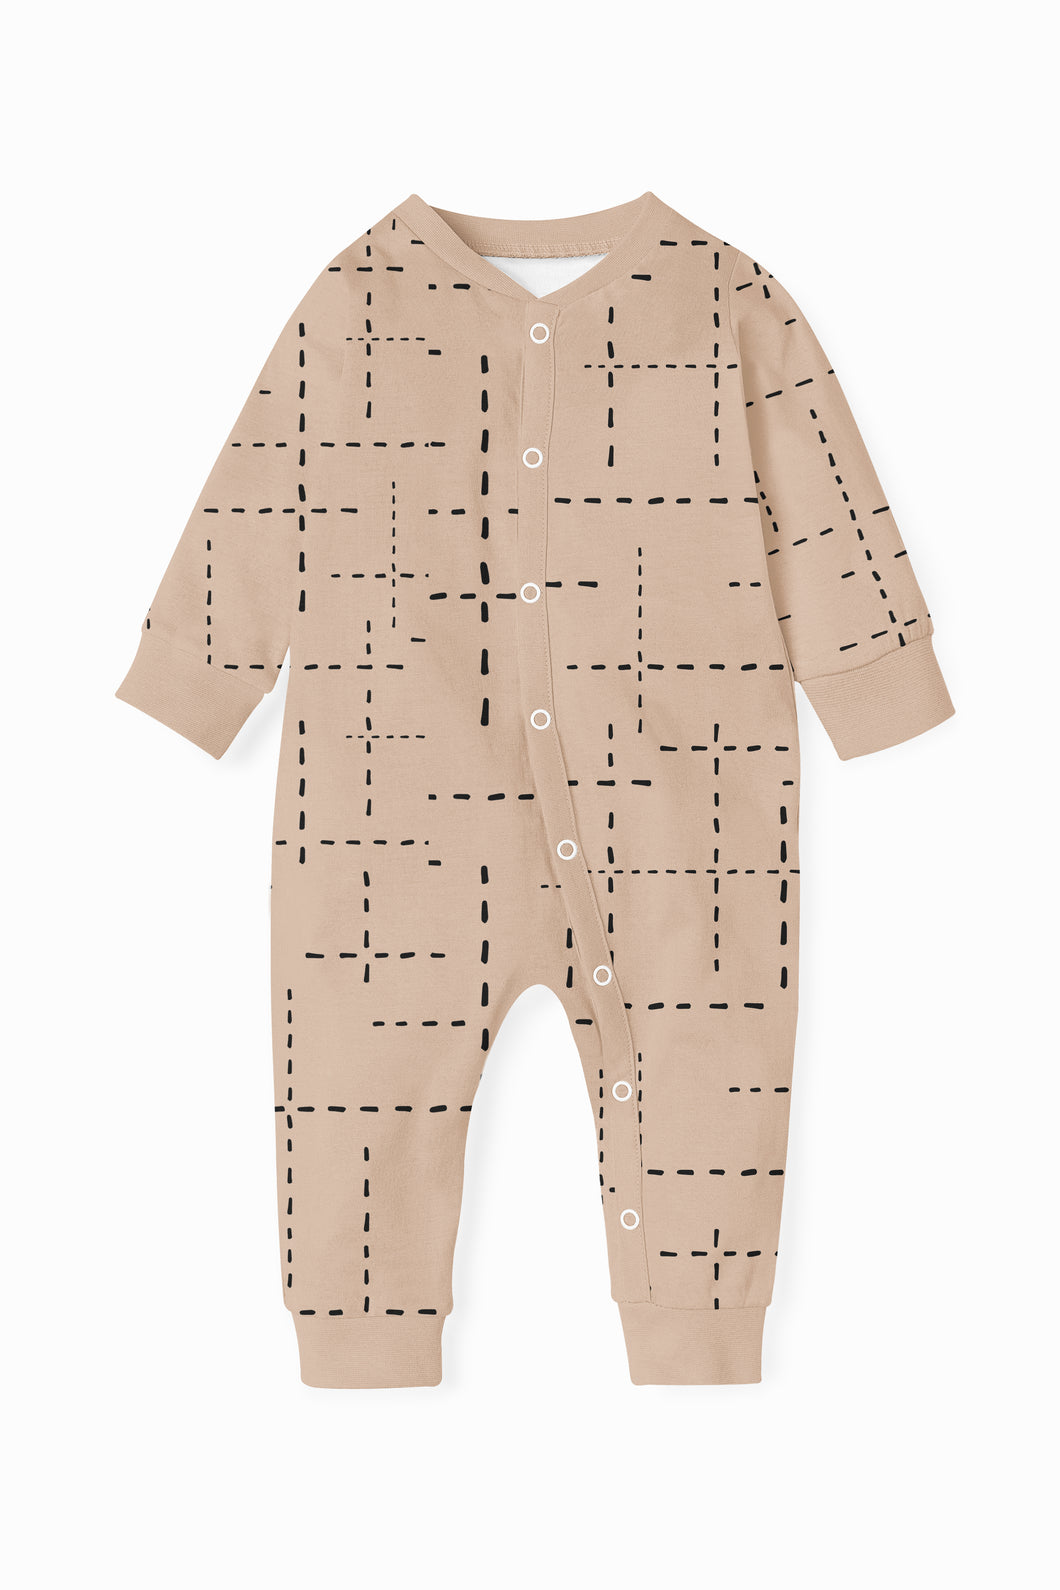 ZIPPY ROMPER  - BLUSH PINK WITH BLACK DASHED LINES AW20